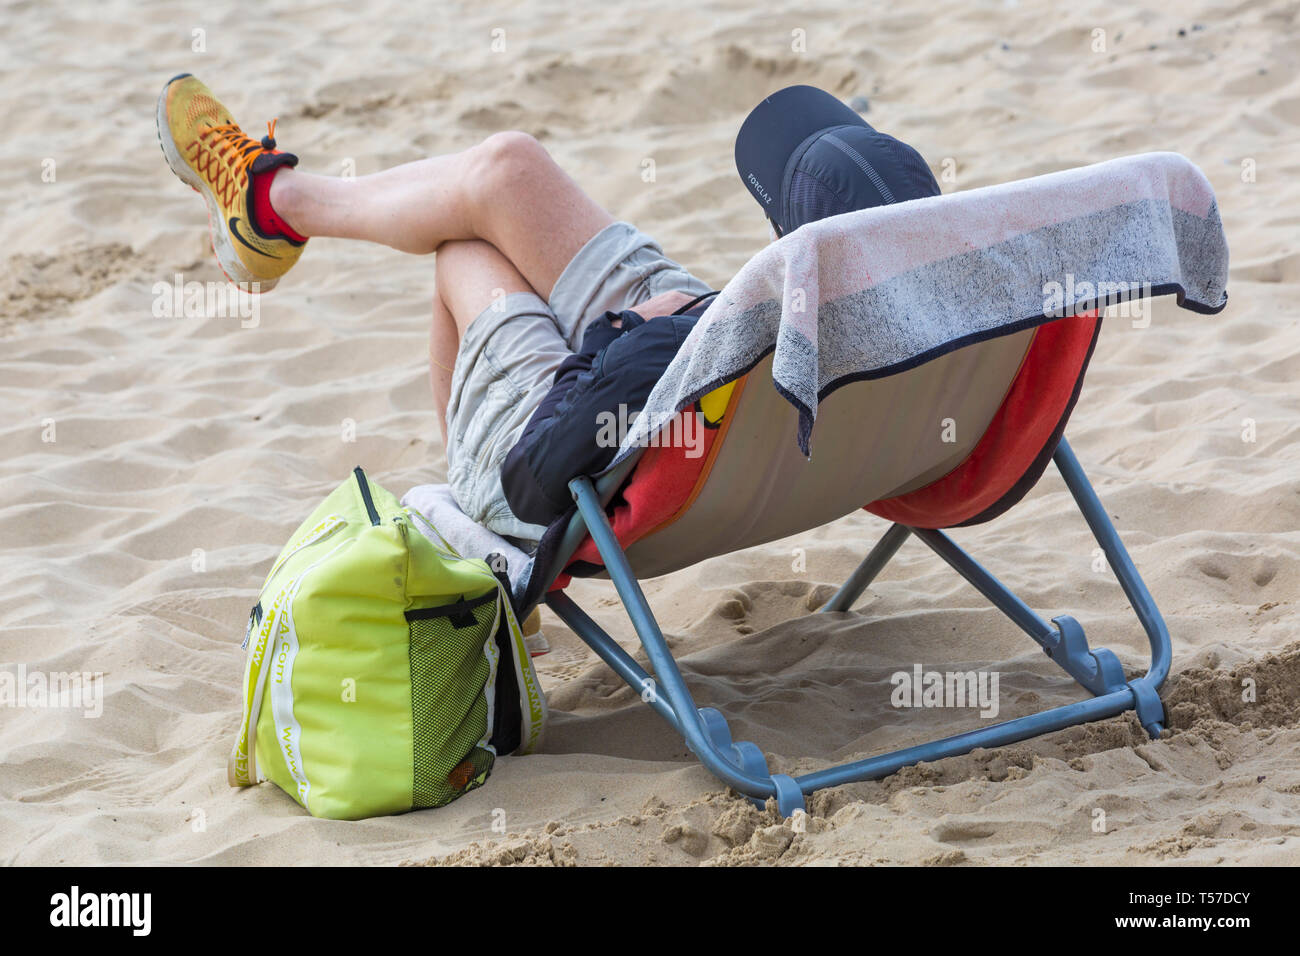 Bournemouth, Dorset, UK. 22nd Apr, 2019. UK weather: after a hazy start the glorious weather continues with hot and sunny weather, as beachgoers head to the seaside to enjoy the heat and sunshine at Bournemouth beaches on Easter Monday before the weather changes and the return to work. Man relaxing in chair on beach. Credit: Carolyn Jenkins/Alamy Live News Stock Photo